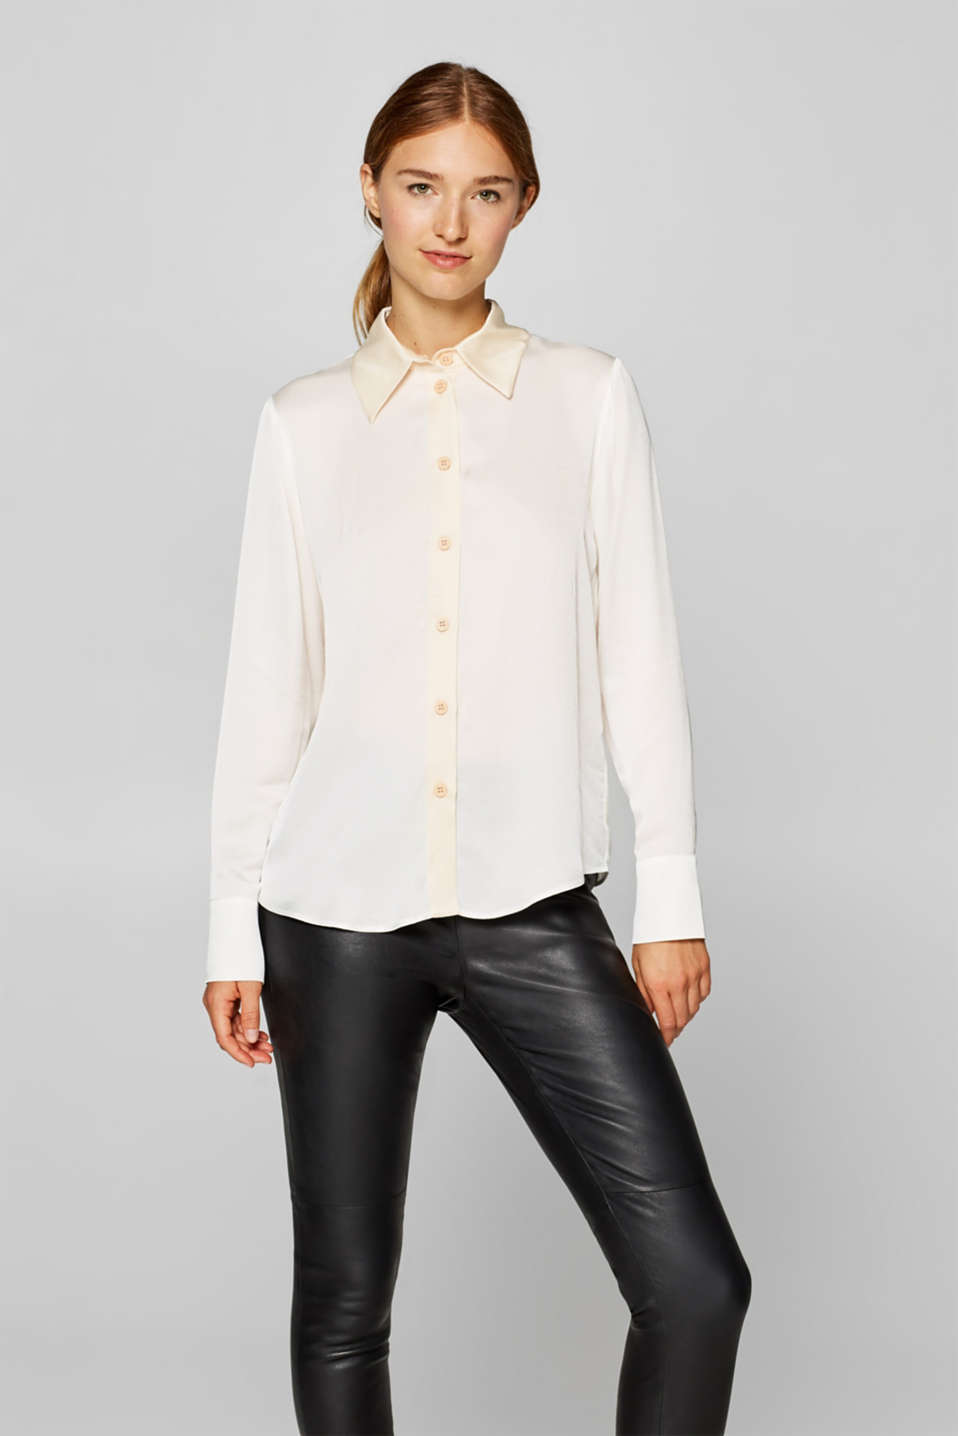 Esprit - Shirt blouse with contrasting details